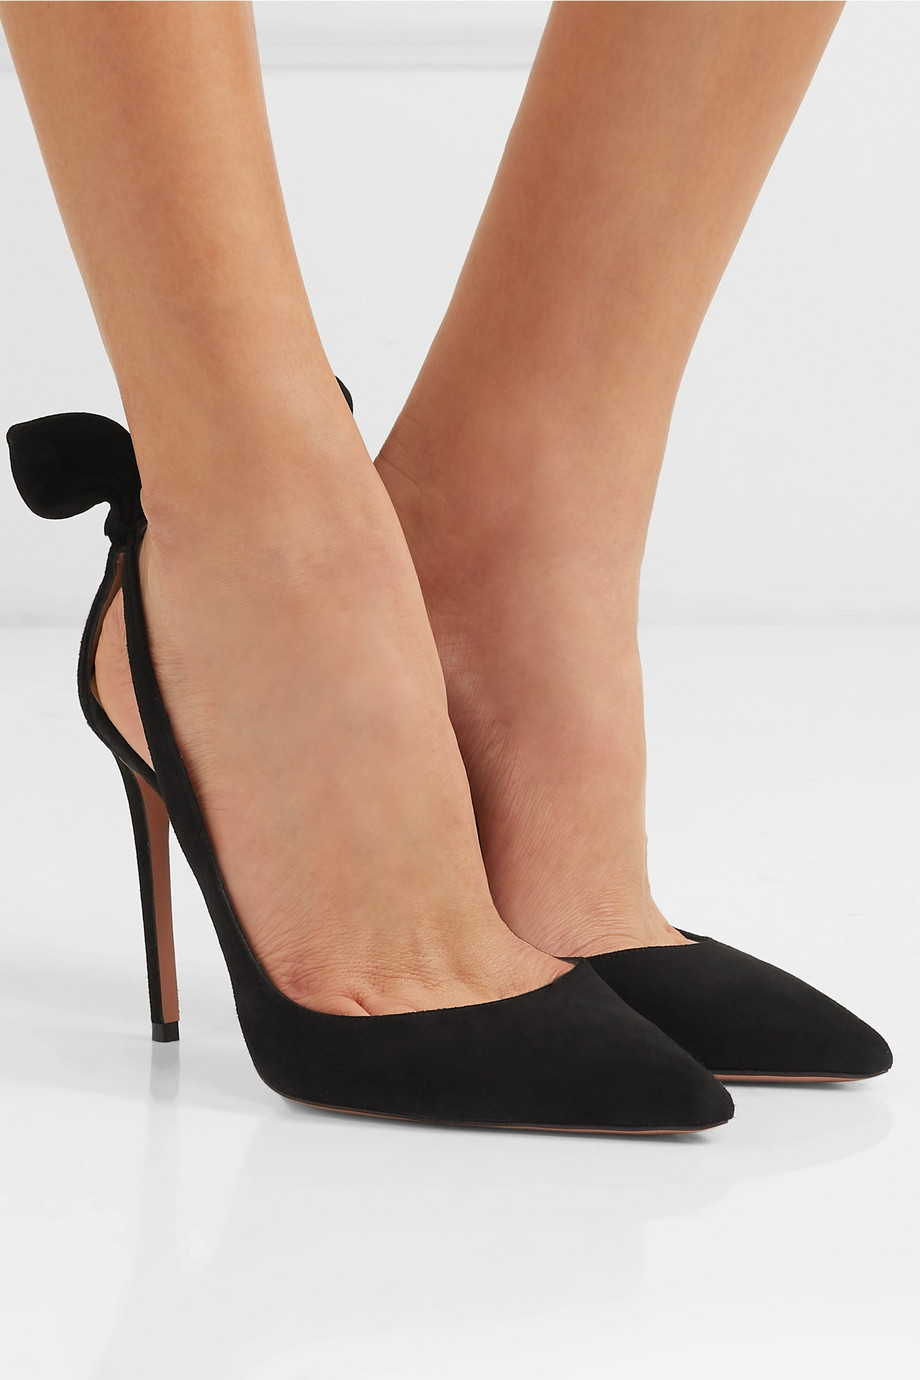 Aquazzura Bow Tie 105 suede pumps